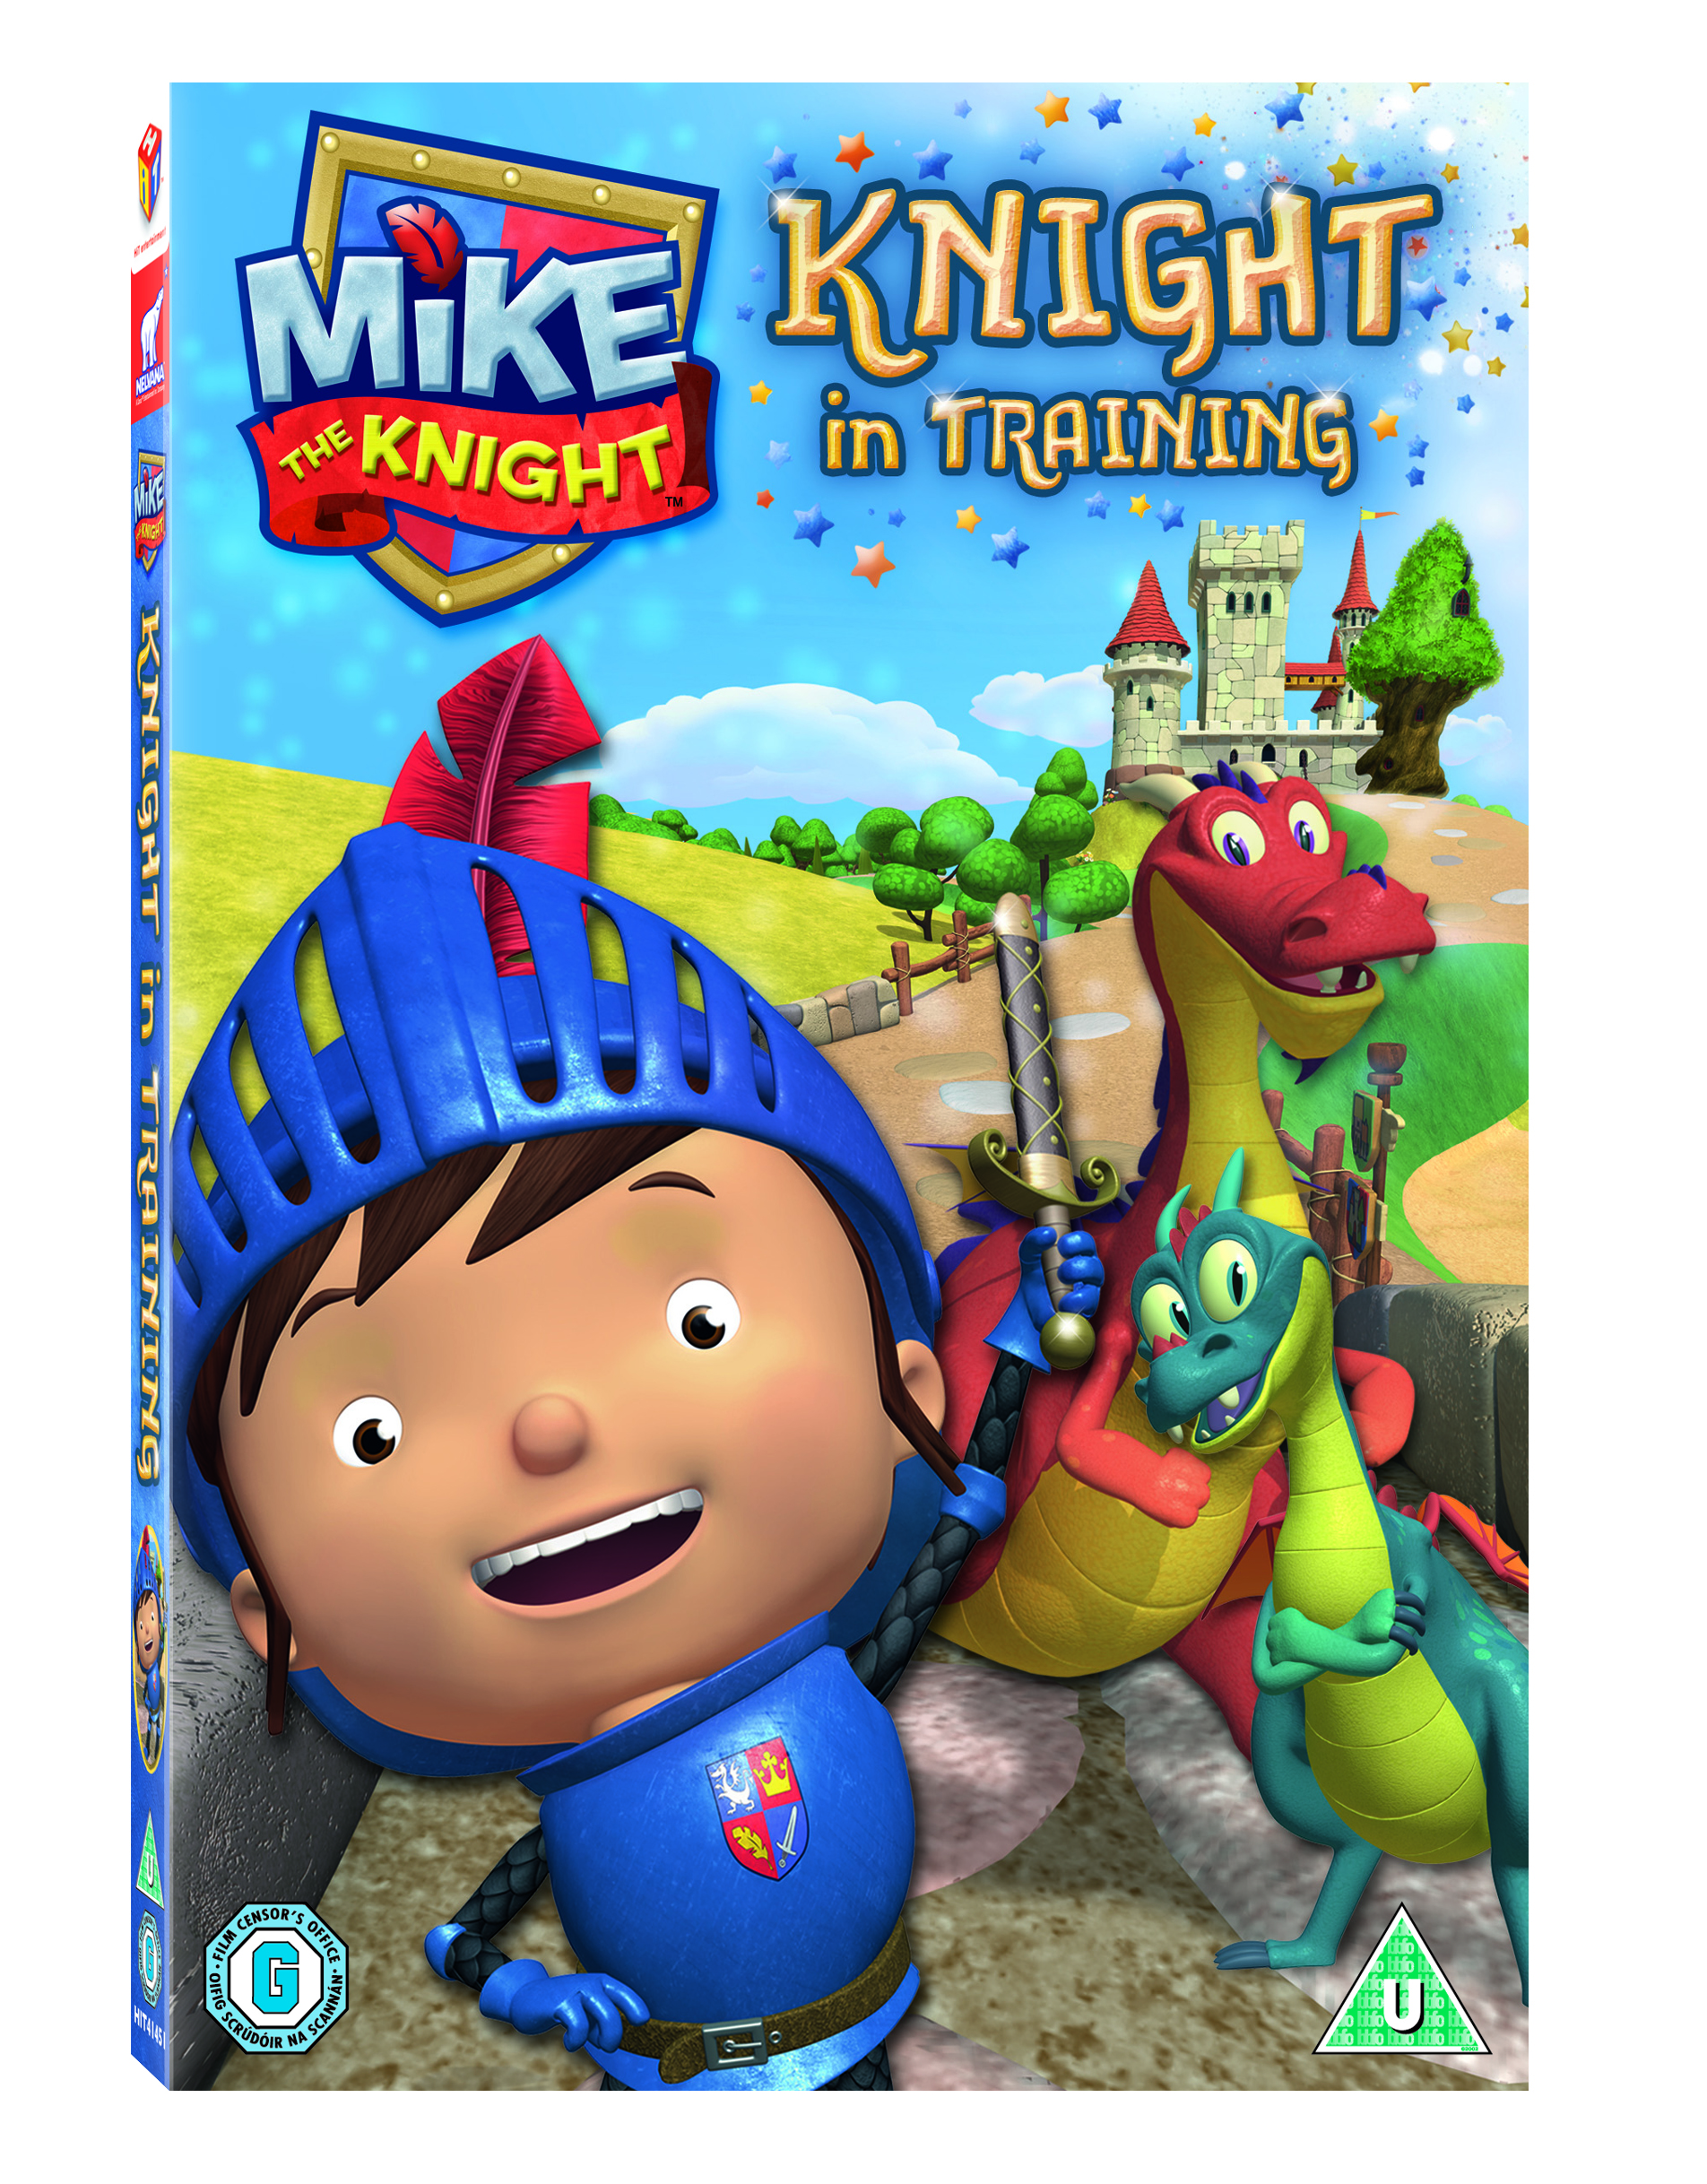 Mike the Knight: Knight in TTraining